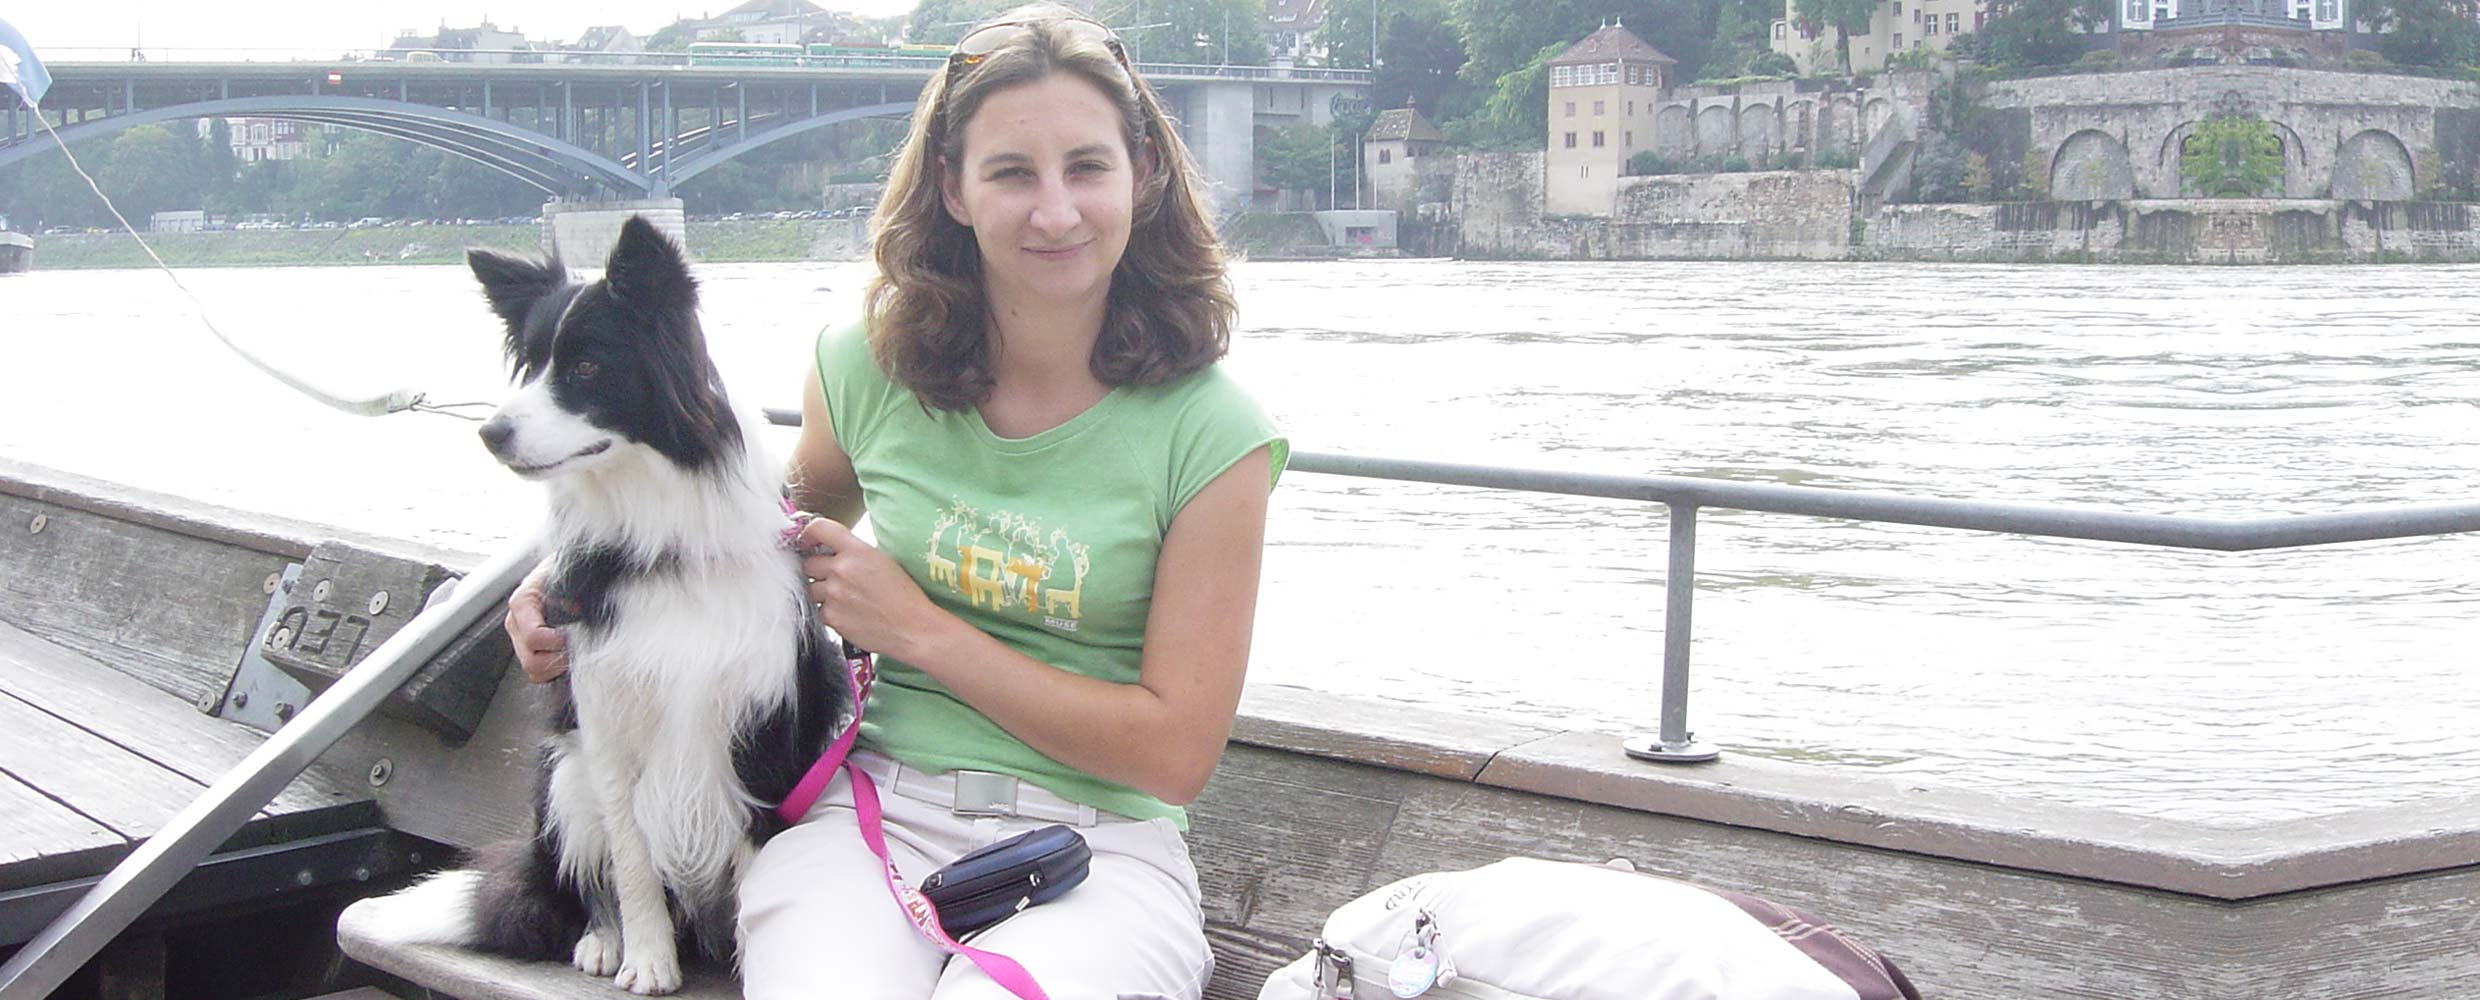 Alison Roets and Freys on a boat on the River Rhine Switzerland